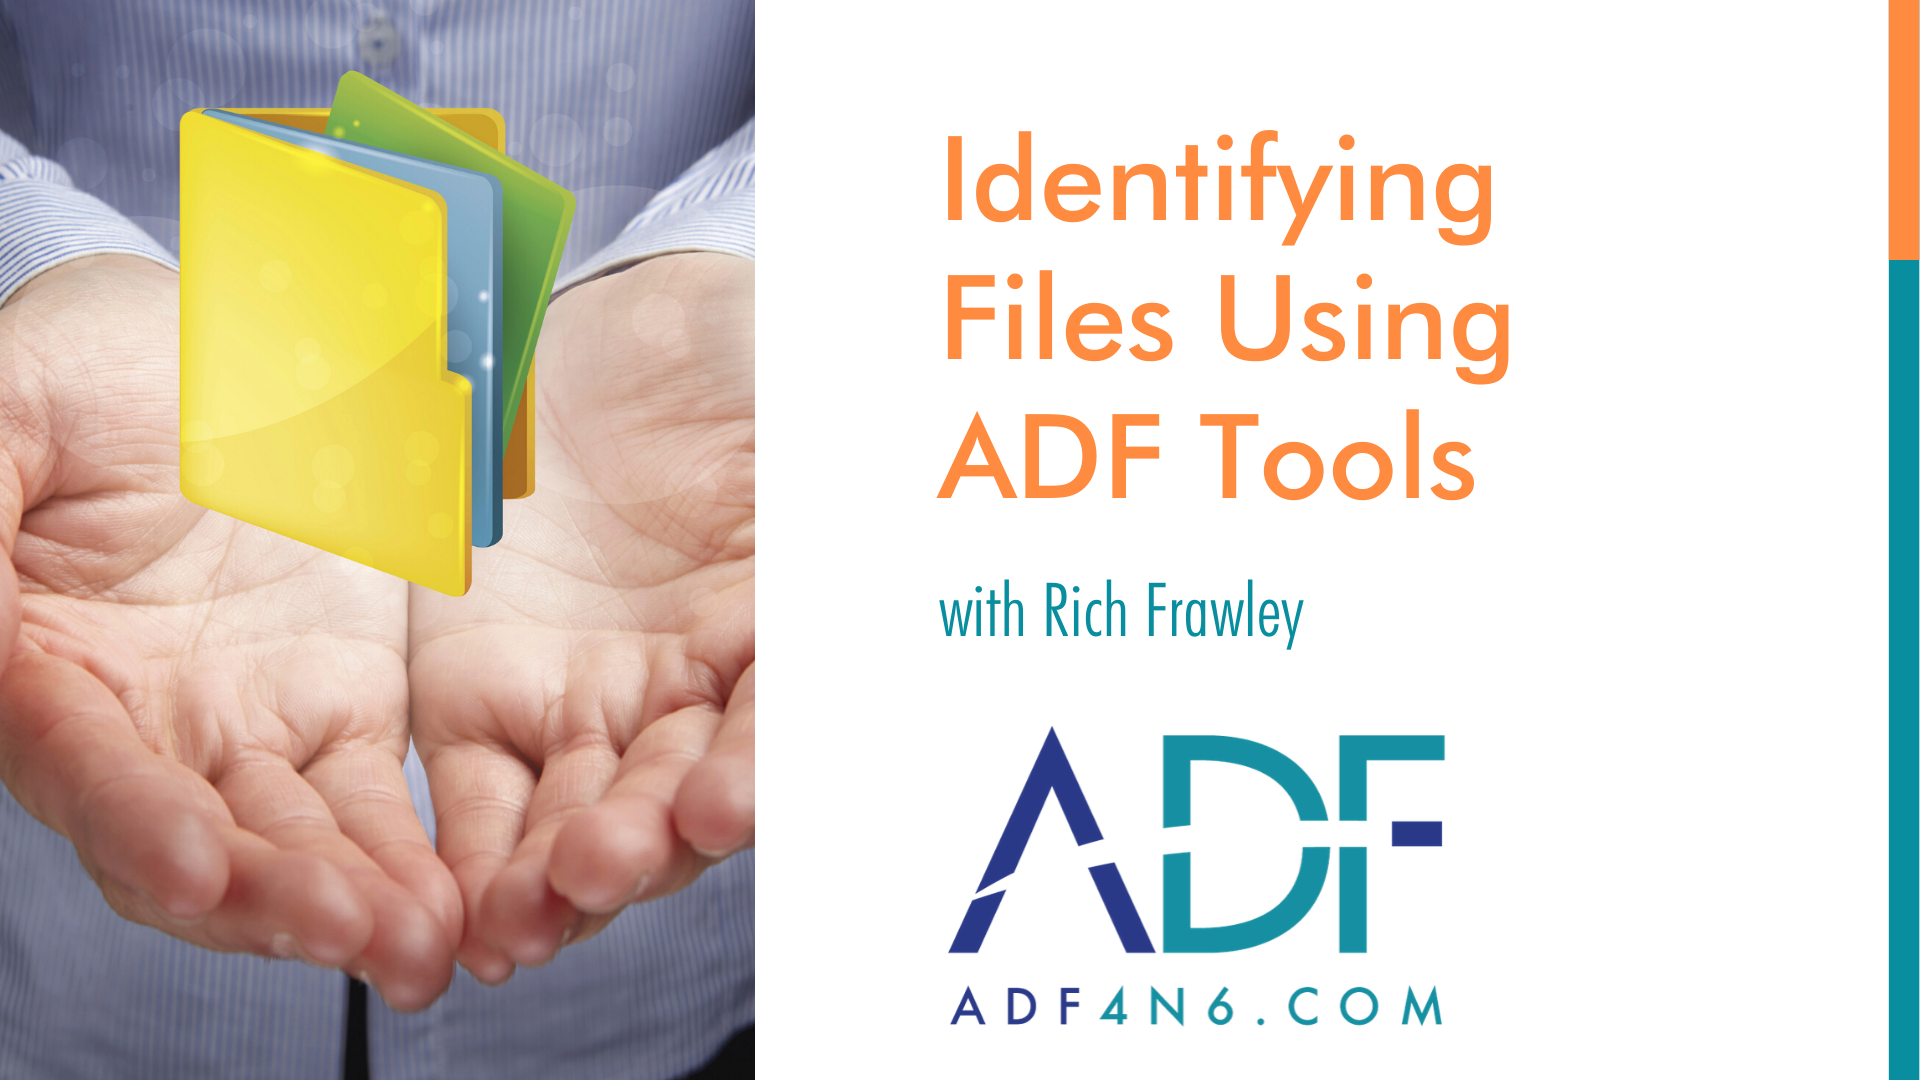 How ADF Tools Identify Files